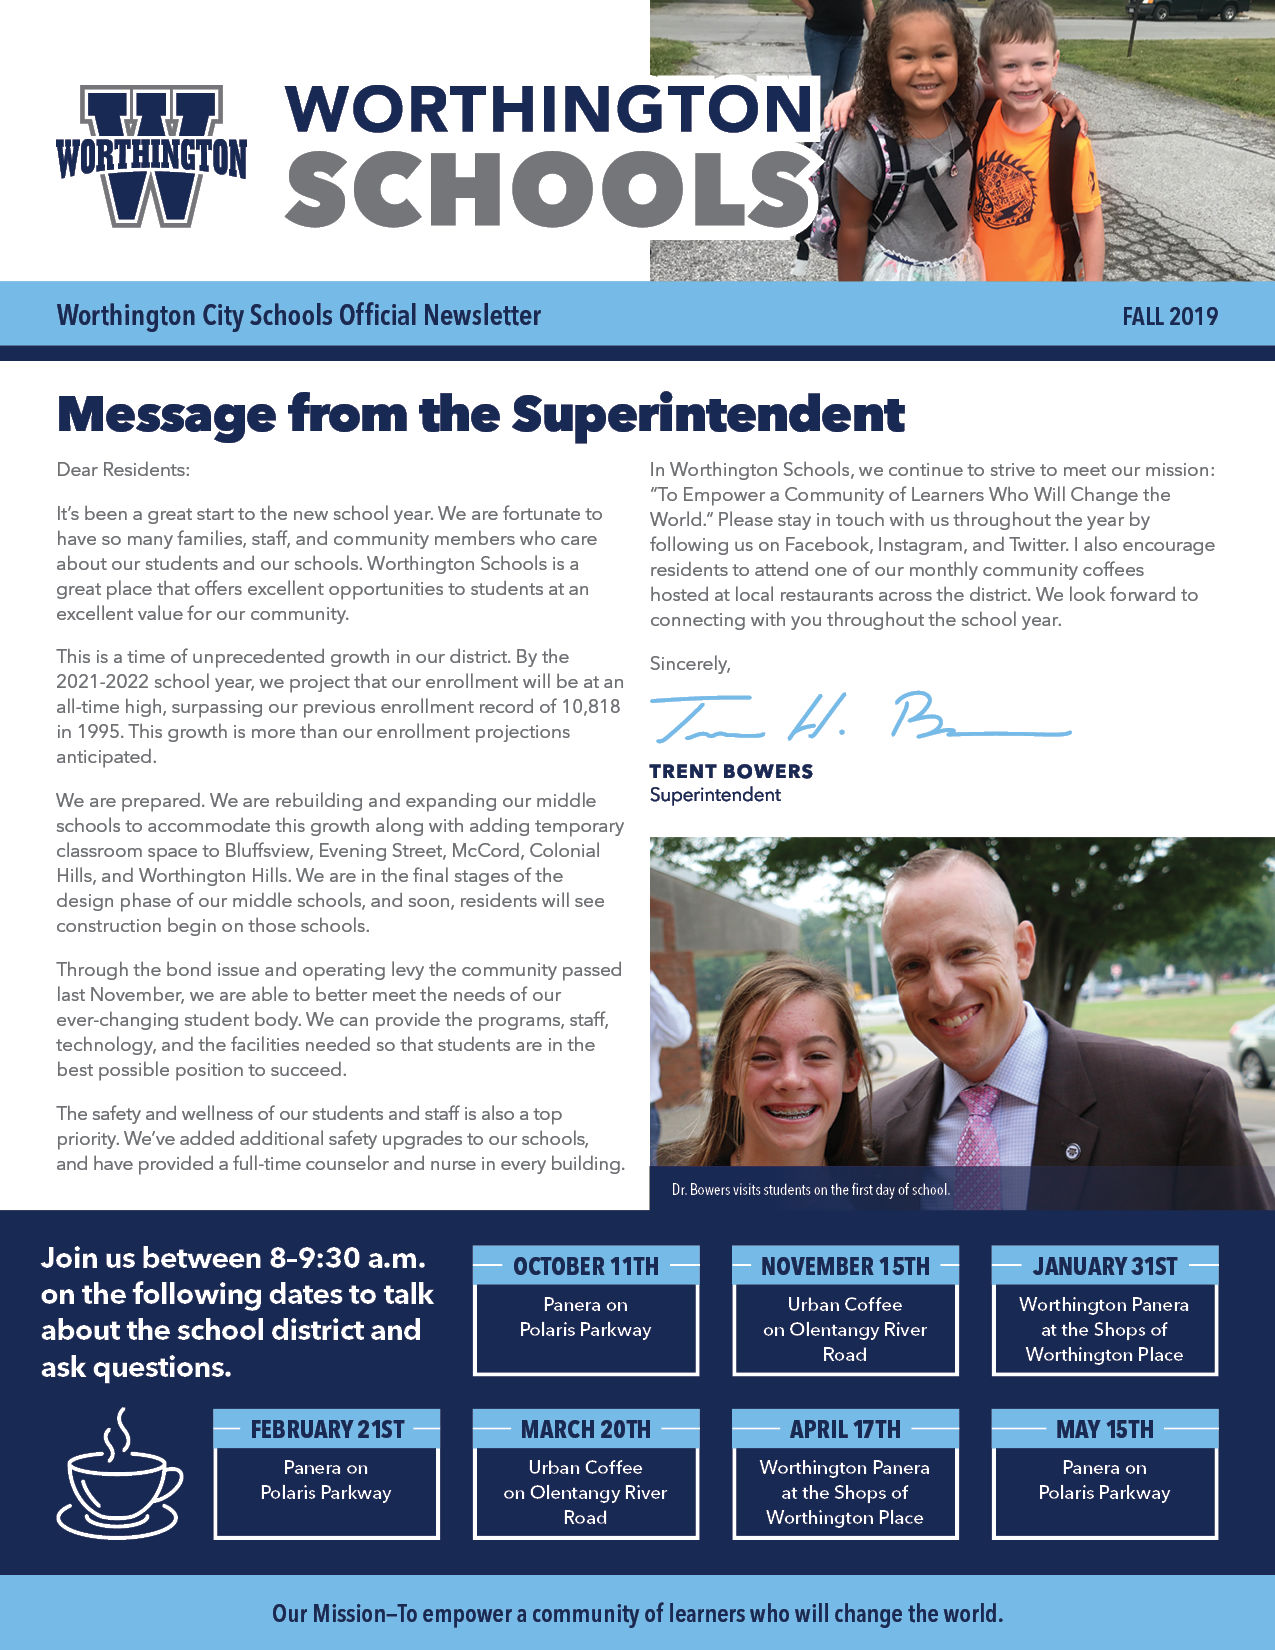 Cover page of newsletter